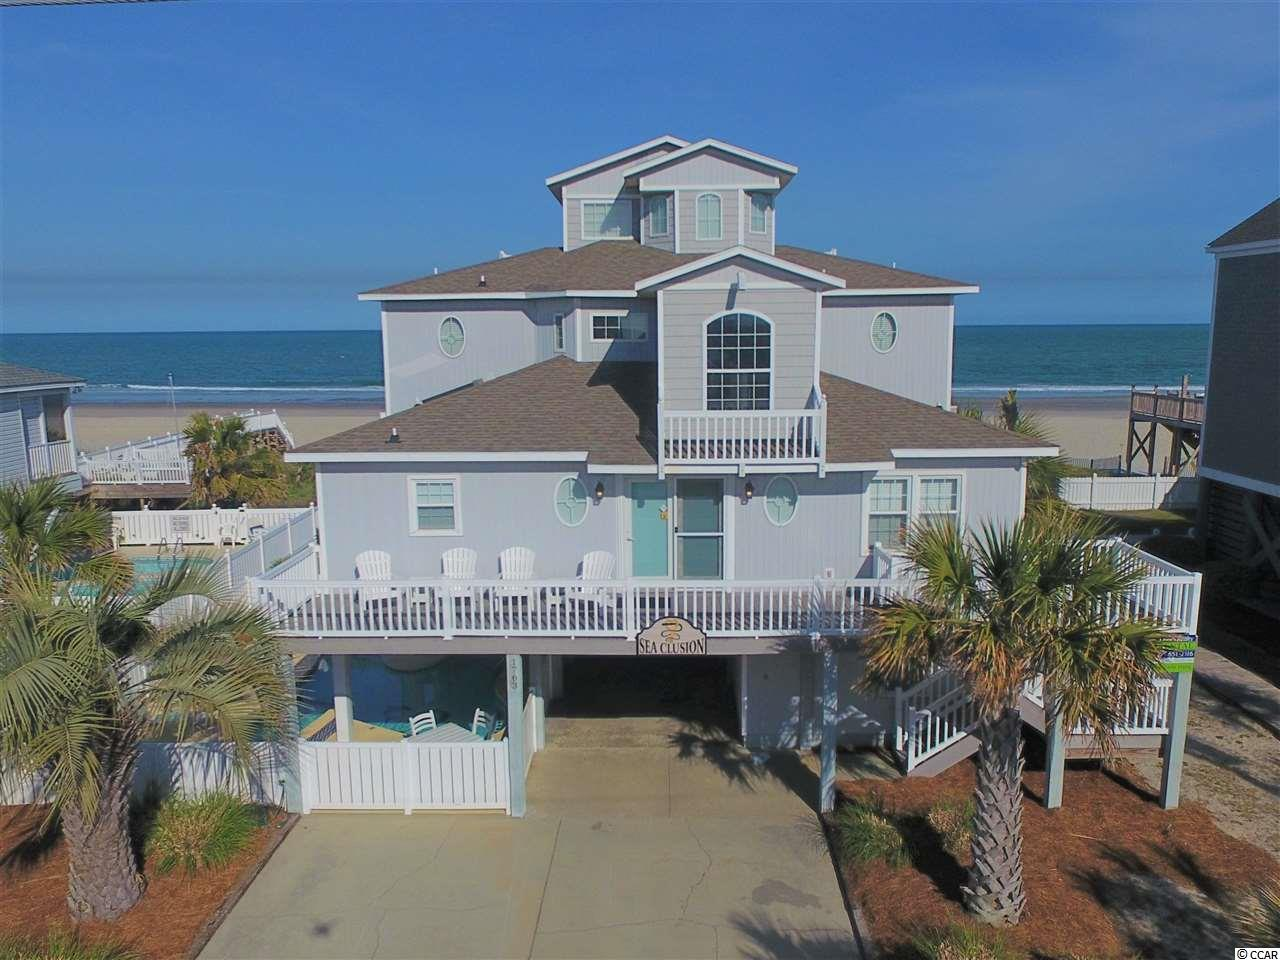 "Welcome to your new ""Sea Clusion"" at the beach.  This 7-bedroom, 5-bath beach home sits on one of the premier large 72' wide oceanfront lots on the South-end of Garden City Beach, South Carolina.  This home underwent a major renovation in 2016.  During the renovations, the flooring was replaced throughout the entire house.  The kitchen and bathrooms were completely gutted.  The sheet rock, insulation, electrical, plumbing and interior doors were replaced on the first two floors (top two floors were added in 1995 to maximize the full 40' county height restriction).  All furniture was replaced and picked out my a professional interior decorator.  A private heated pool helps generate great rental income and makes this house an excellent investment property.  This beach home is in immaculate shape and ready for a new owner.  Contact the listing agent, or your Realtor, to set up a private showing.  To see the 3-D Virtual Tour, click the following link: https://my.matterport.com/show/?m=jGLDj9VAALC&brand=0"